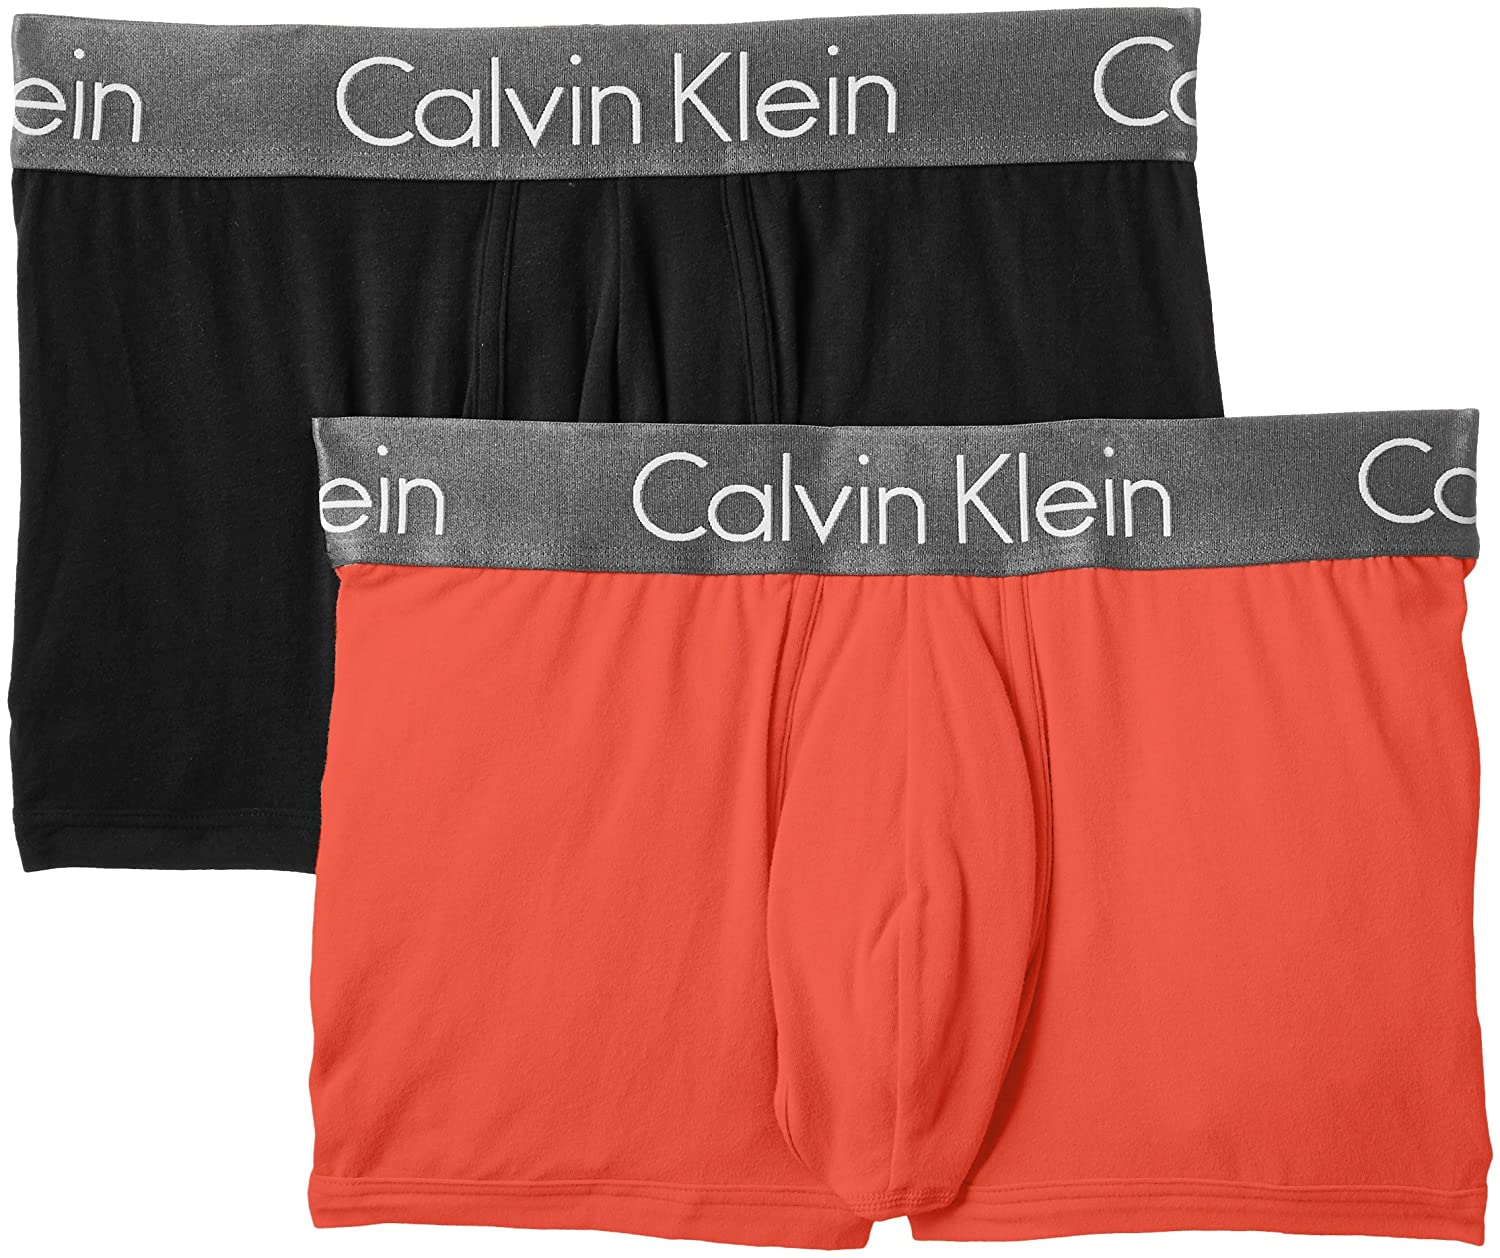 CALVIN KLEIN 3 Pack Low Rise Contrast Waistband Trunk